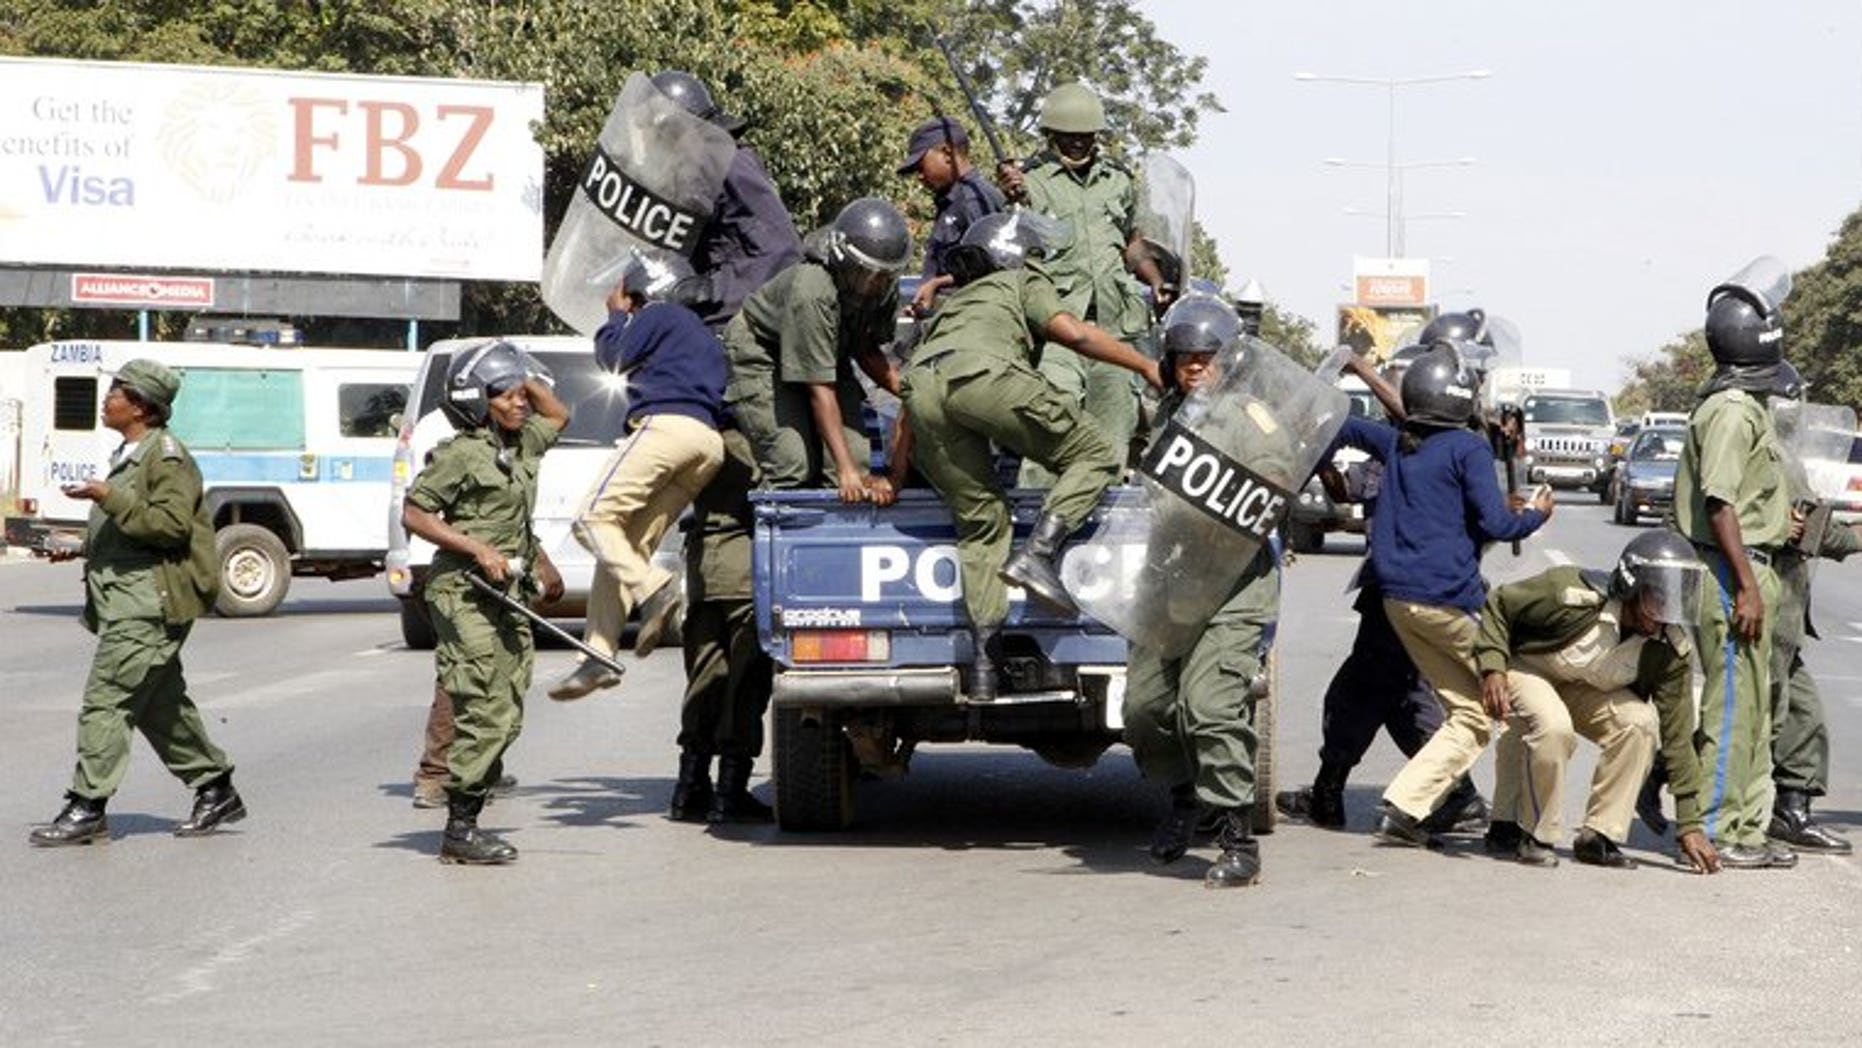 Zambian police officers arrive at the University of Zambia on May 17, 2013 in Lusaka. Zambian police on Monday arrested and charged a journalist with having porn on his computer in another apparent crackdown on a publication critical of the government, his lawyer said.